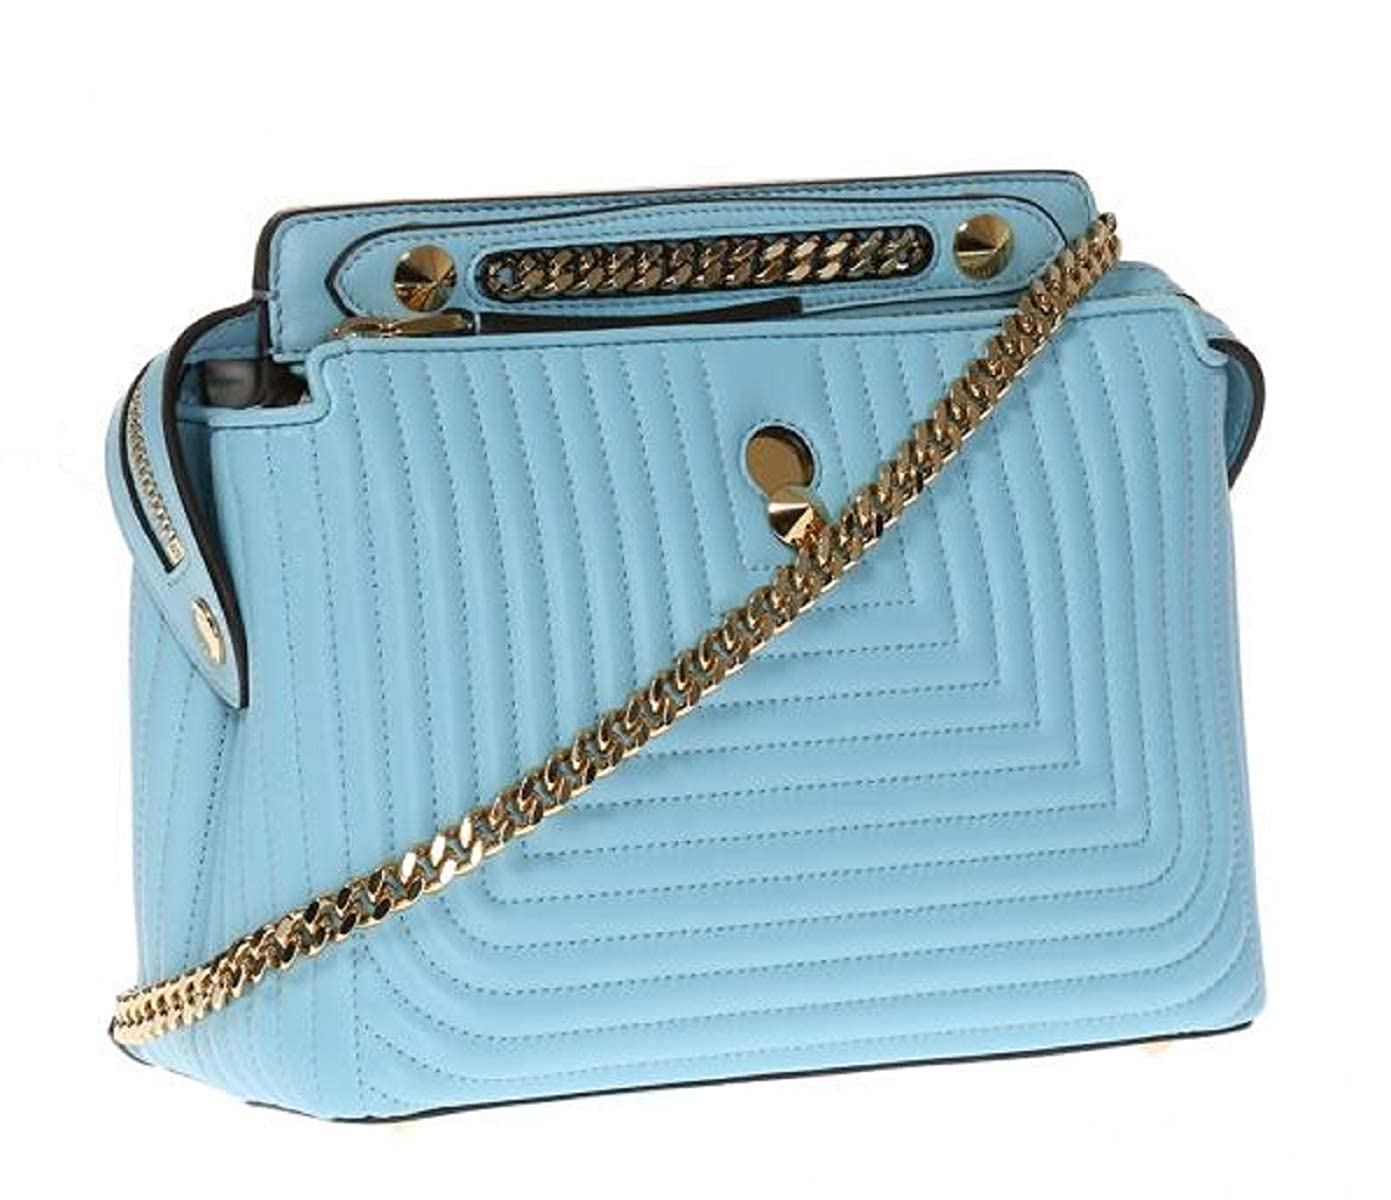 a9ec189c3d66 Fendi Dotcom Click Blue Turquoise Small Quilted Lambskin Leather Chain  Satchel Bag Gold Hardware 8BN299  Handbags  Amazon.com